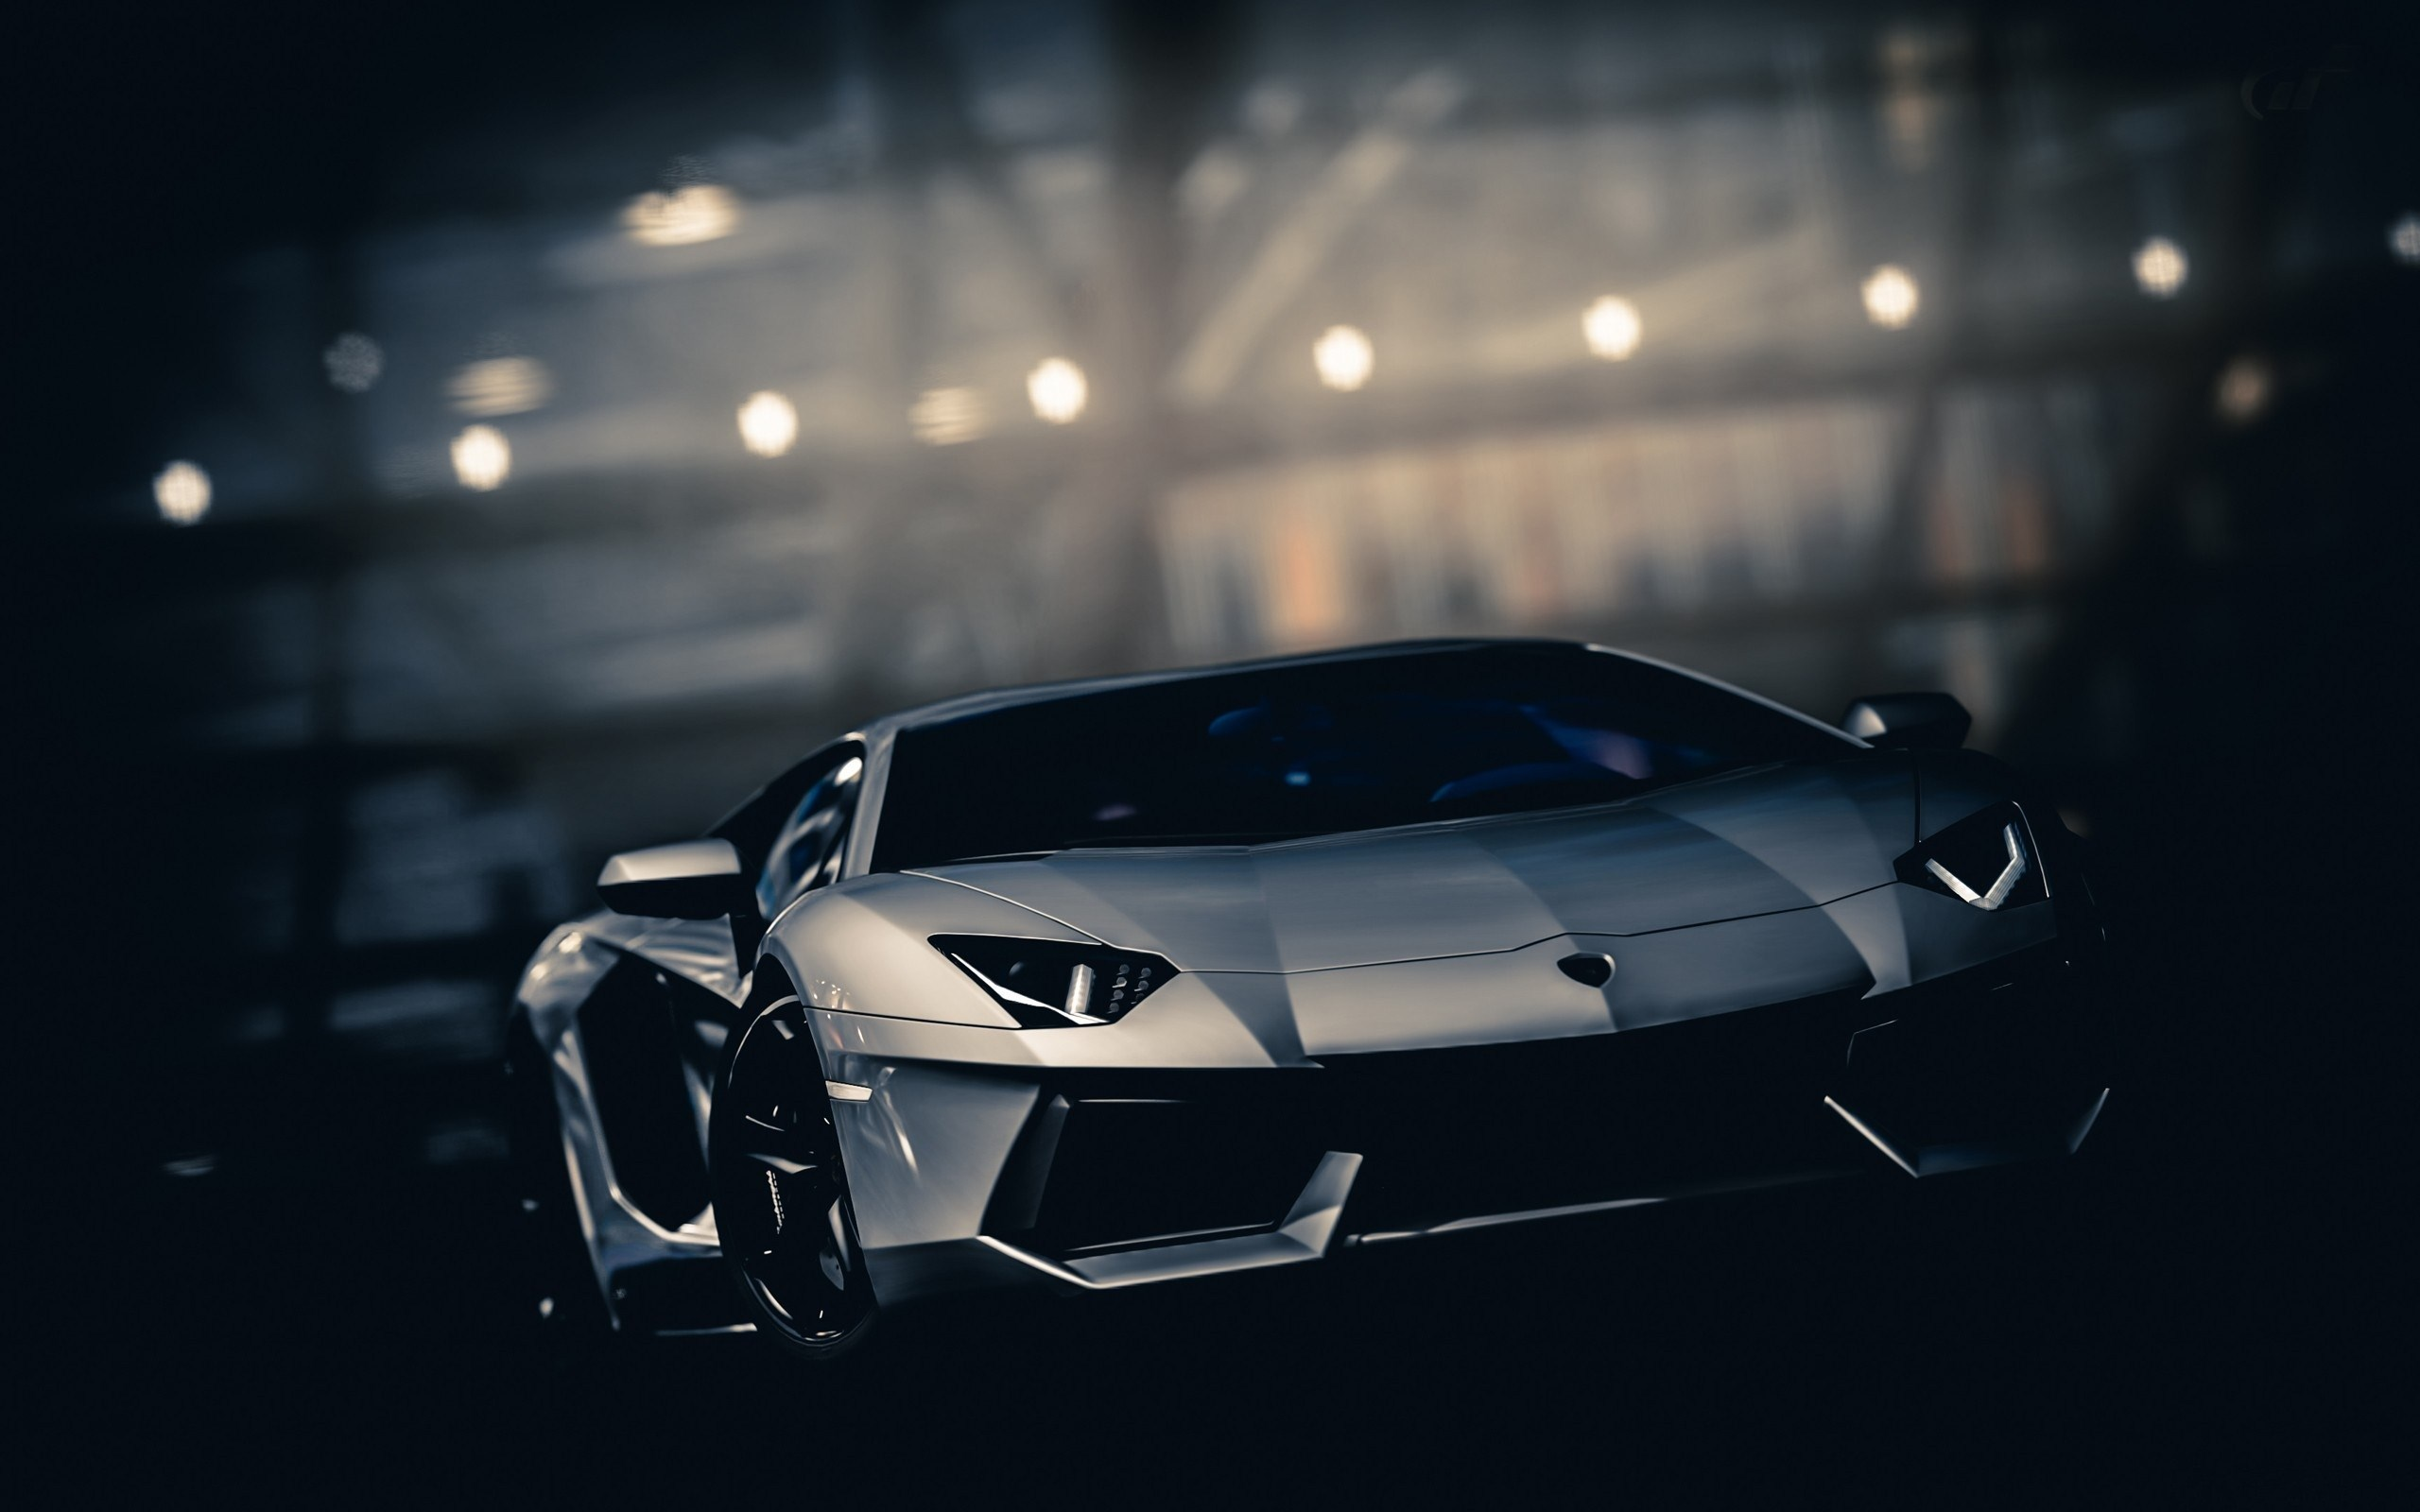 30 Awesome Sport Car Desktop Wallpapers 2560x1600